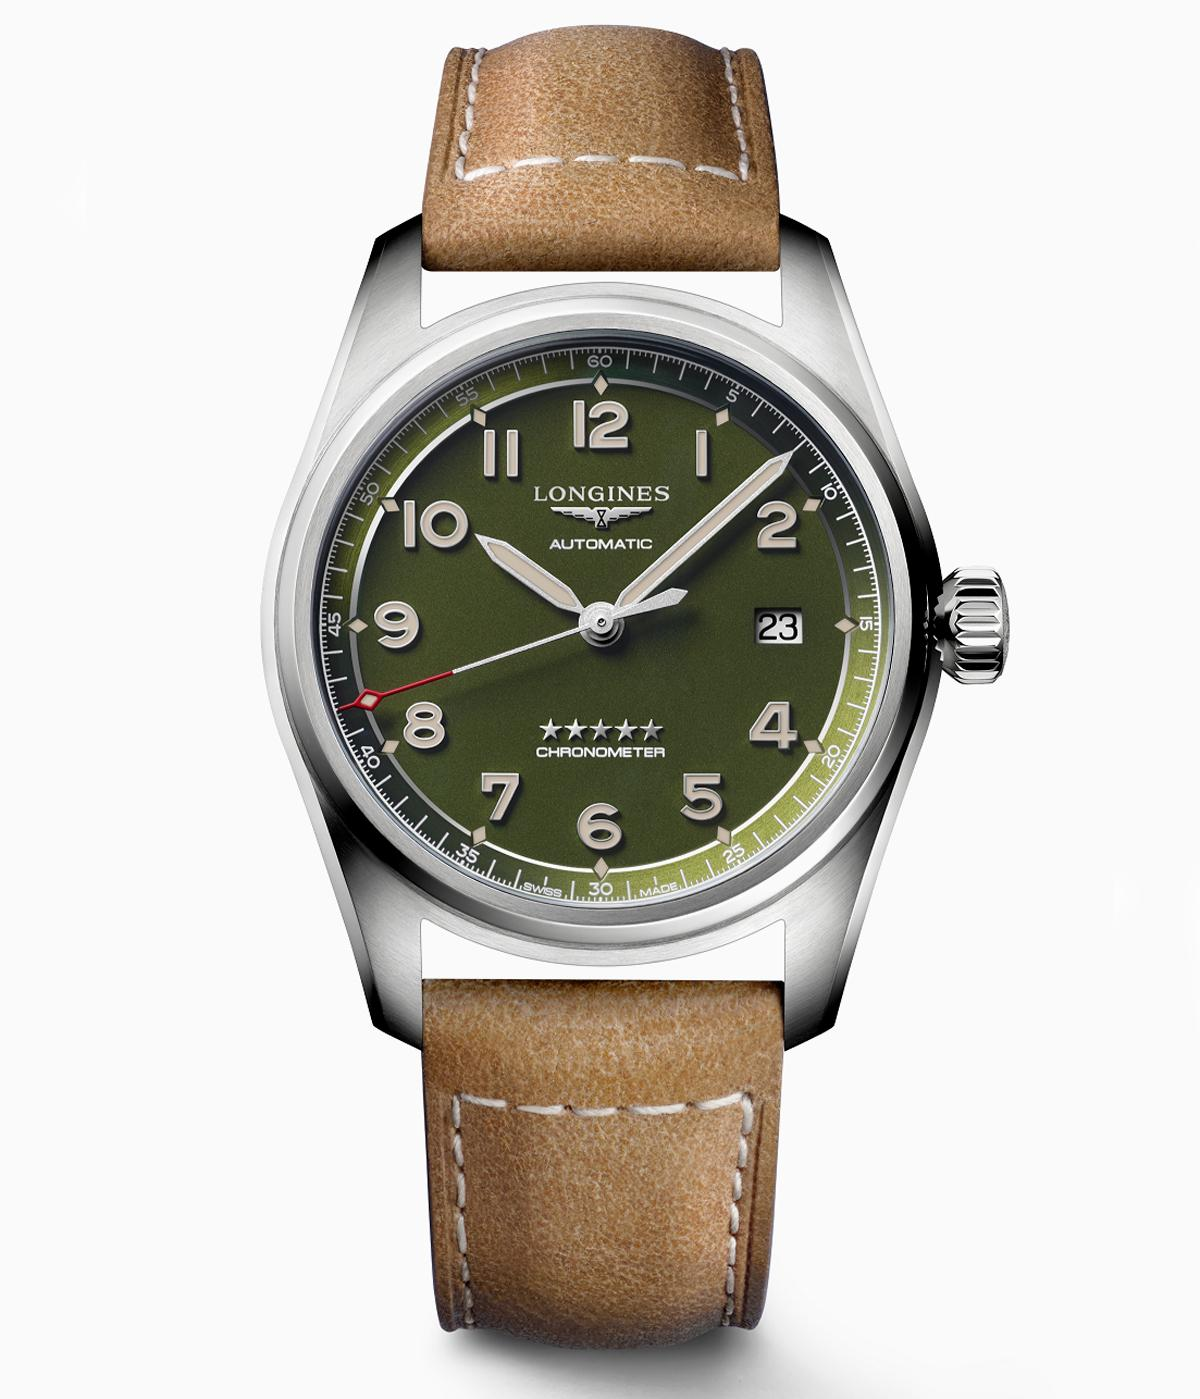 Longines watch with green face and brown leather strap